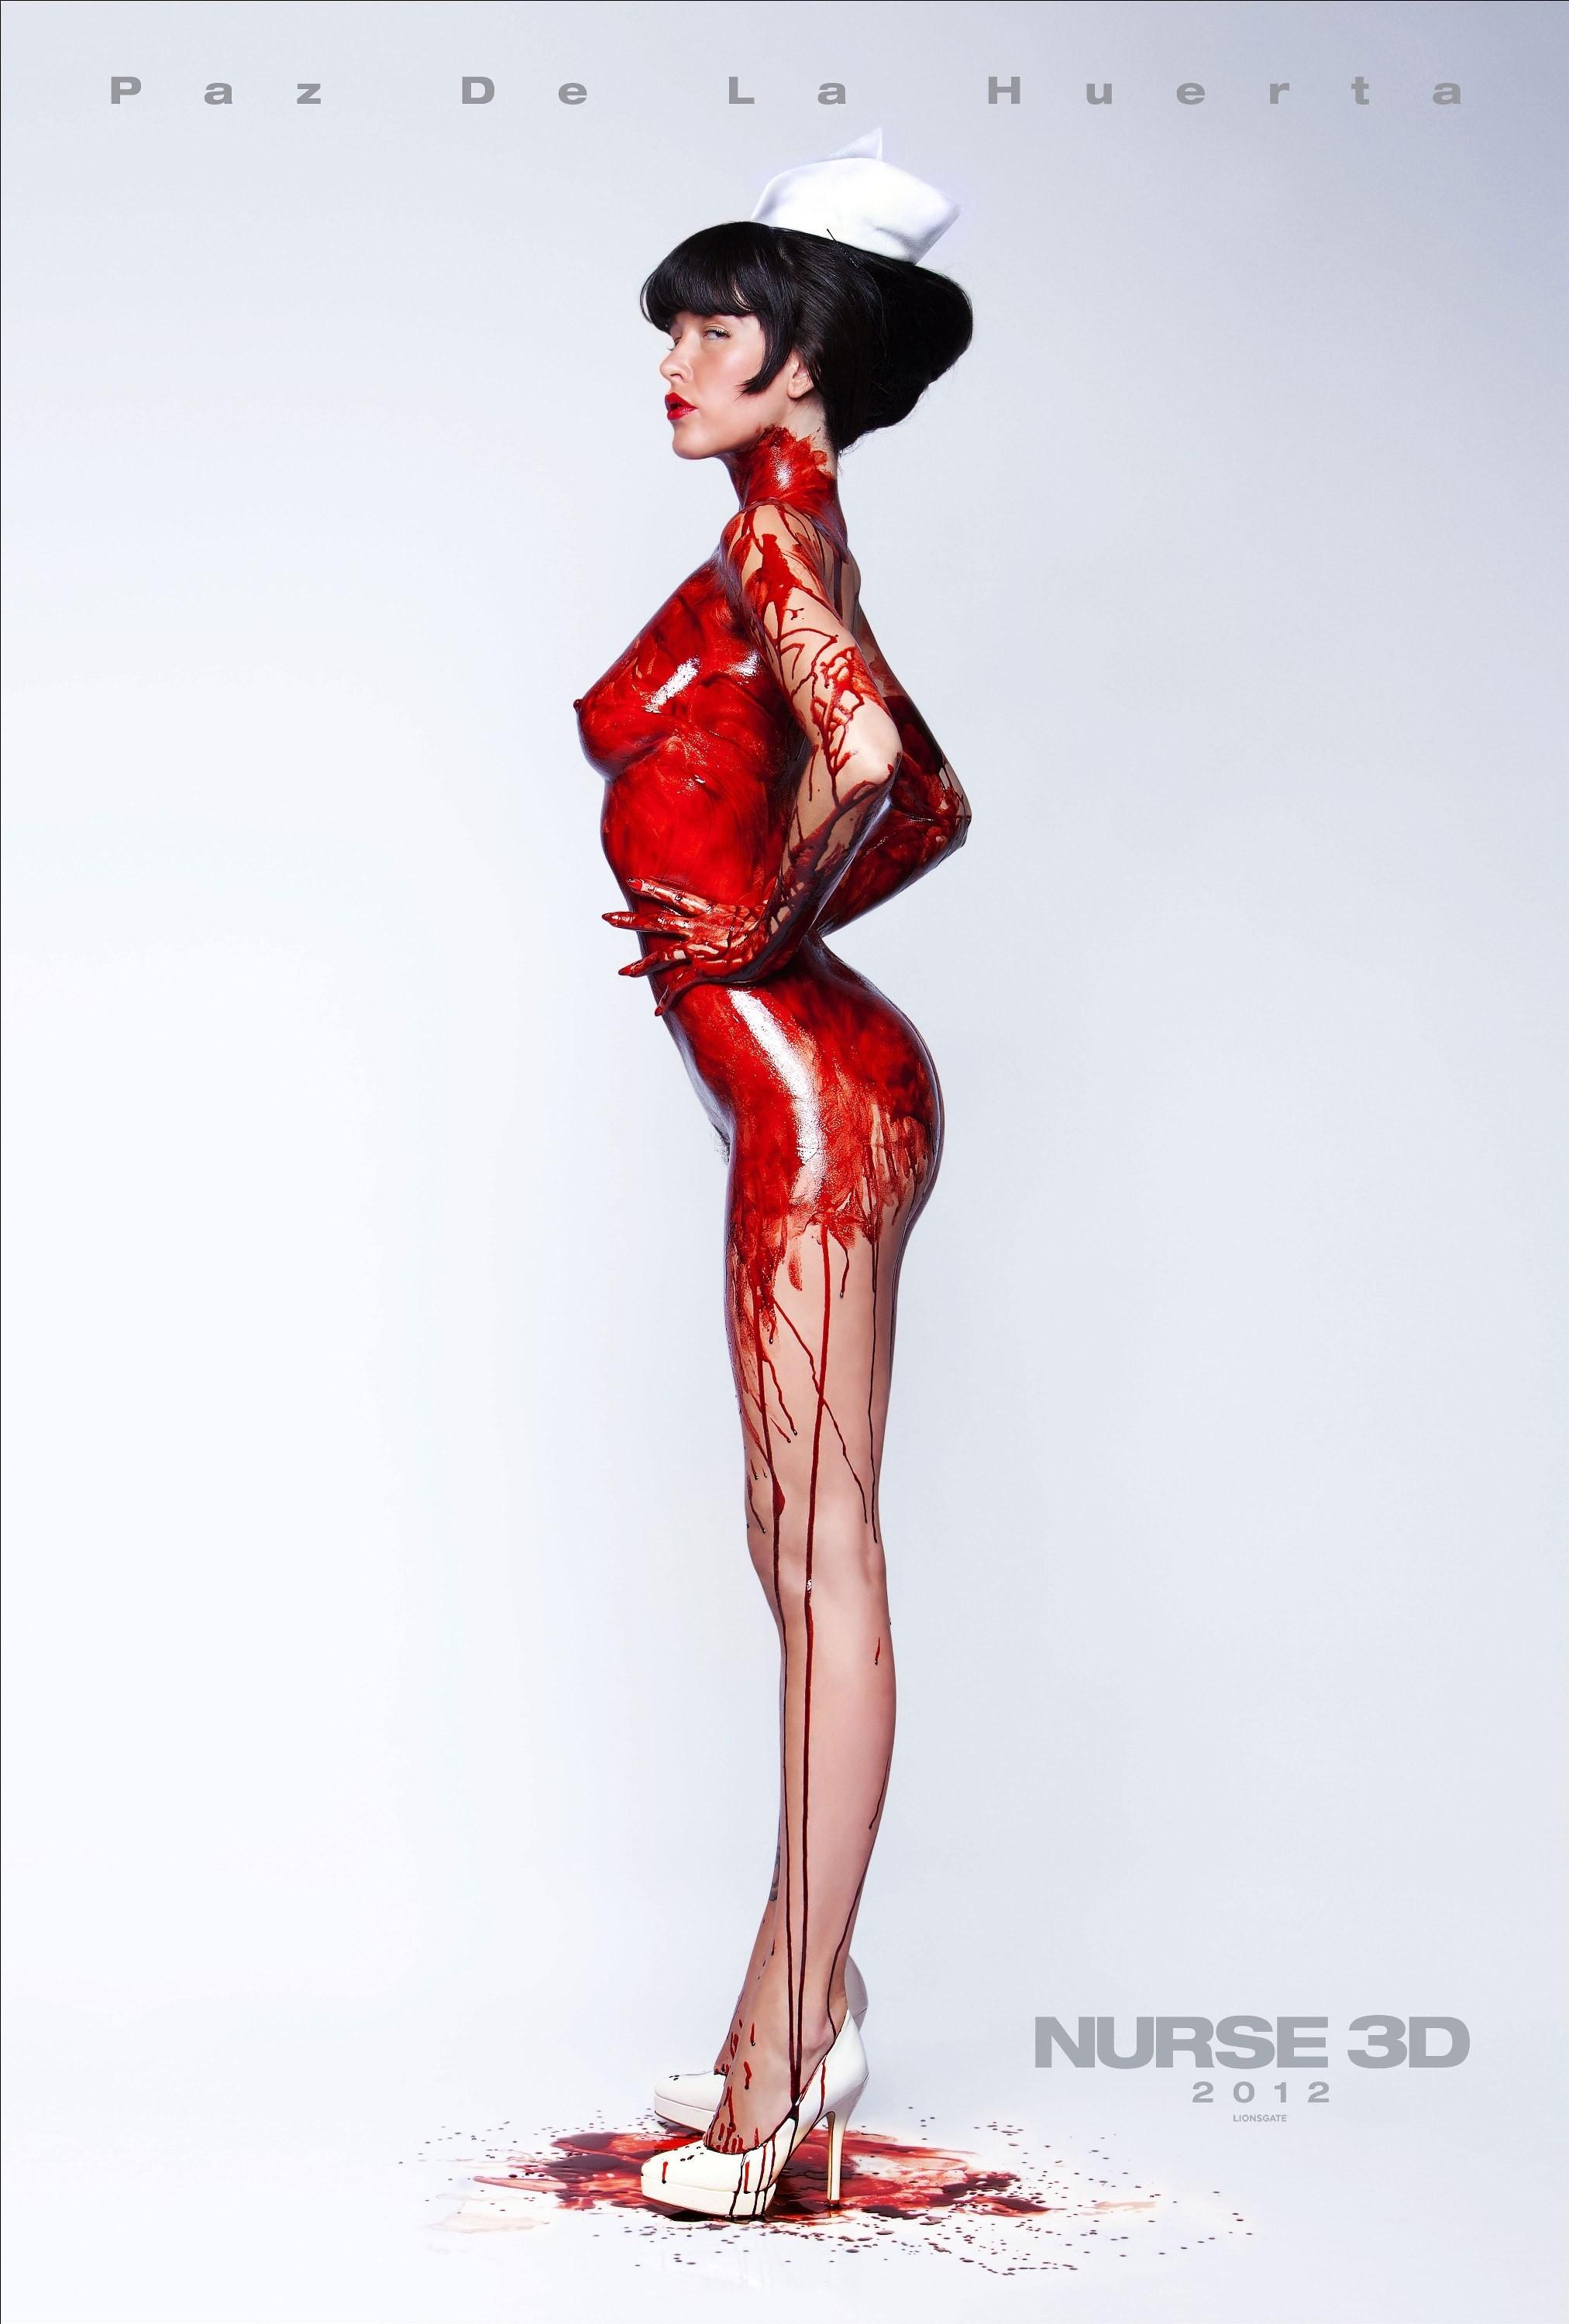 Nurse 3-D: Mega Image Sized Movie Poster - Internet Movie Poster Gallery Prix